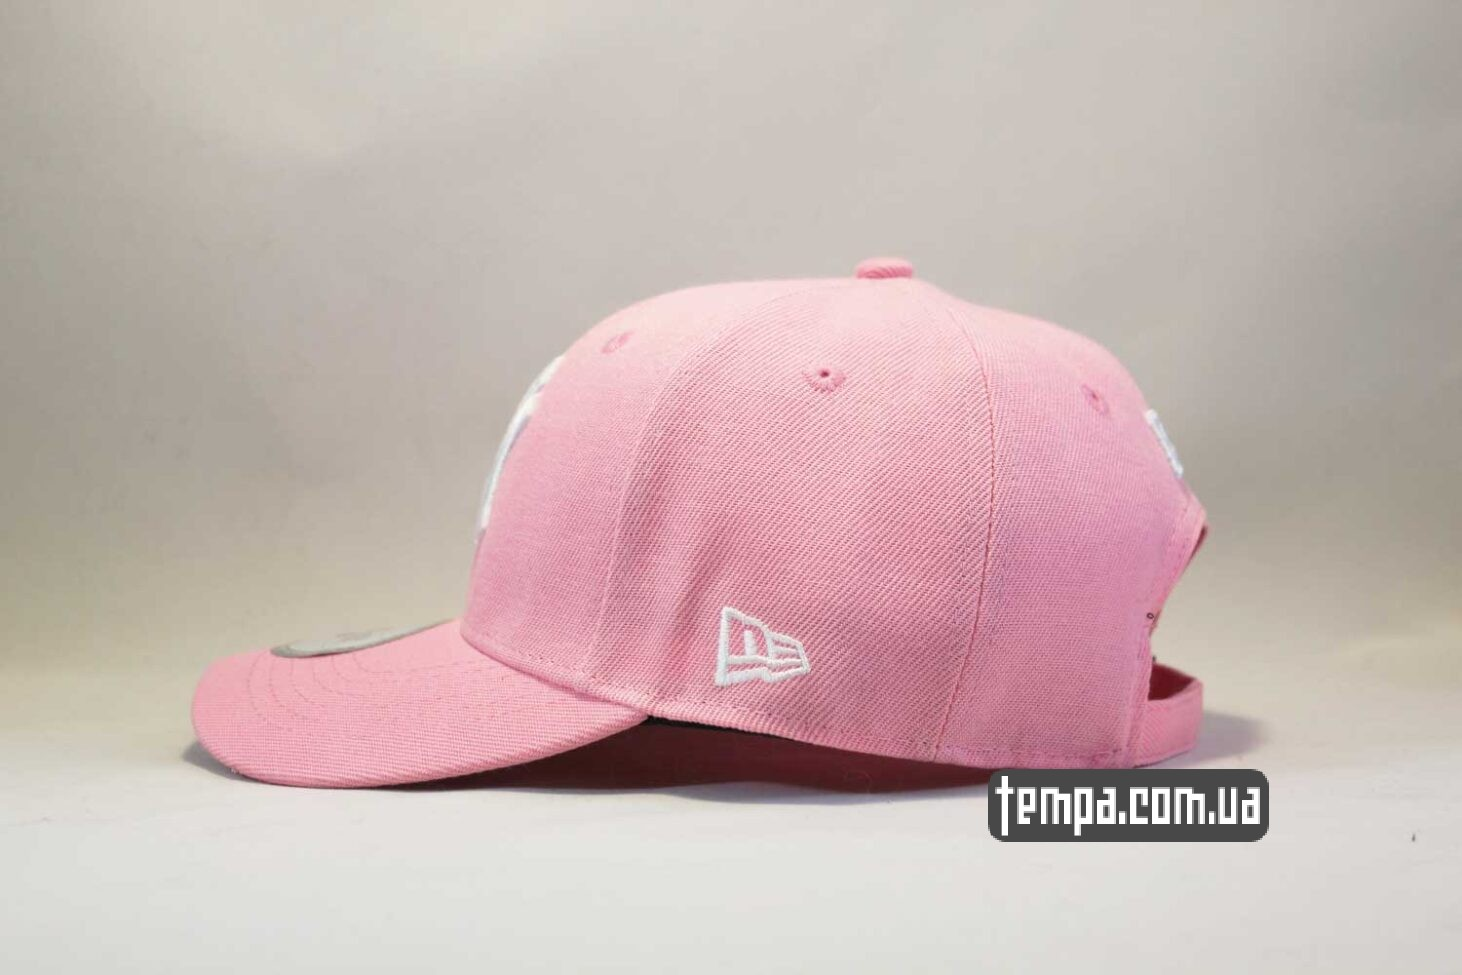 newera ориниал Украина купить кепка бейсболка New Era Yankees Pink розовая бейсболка